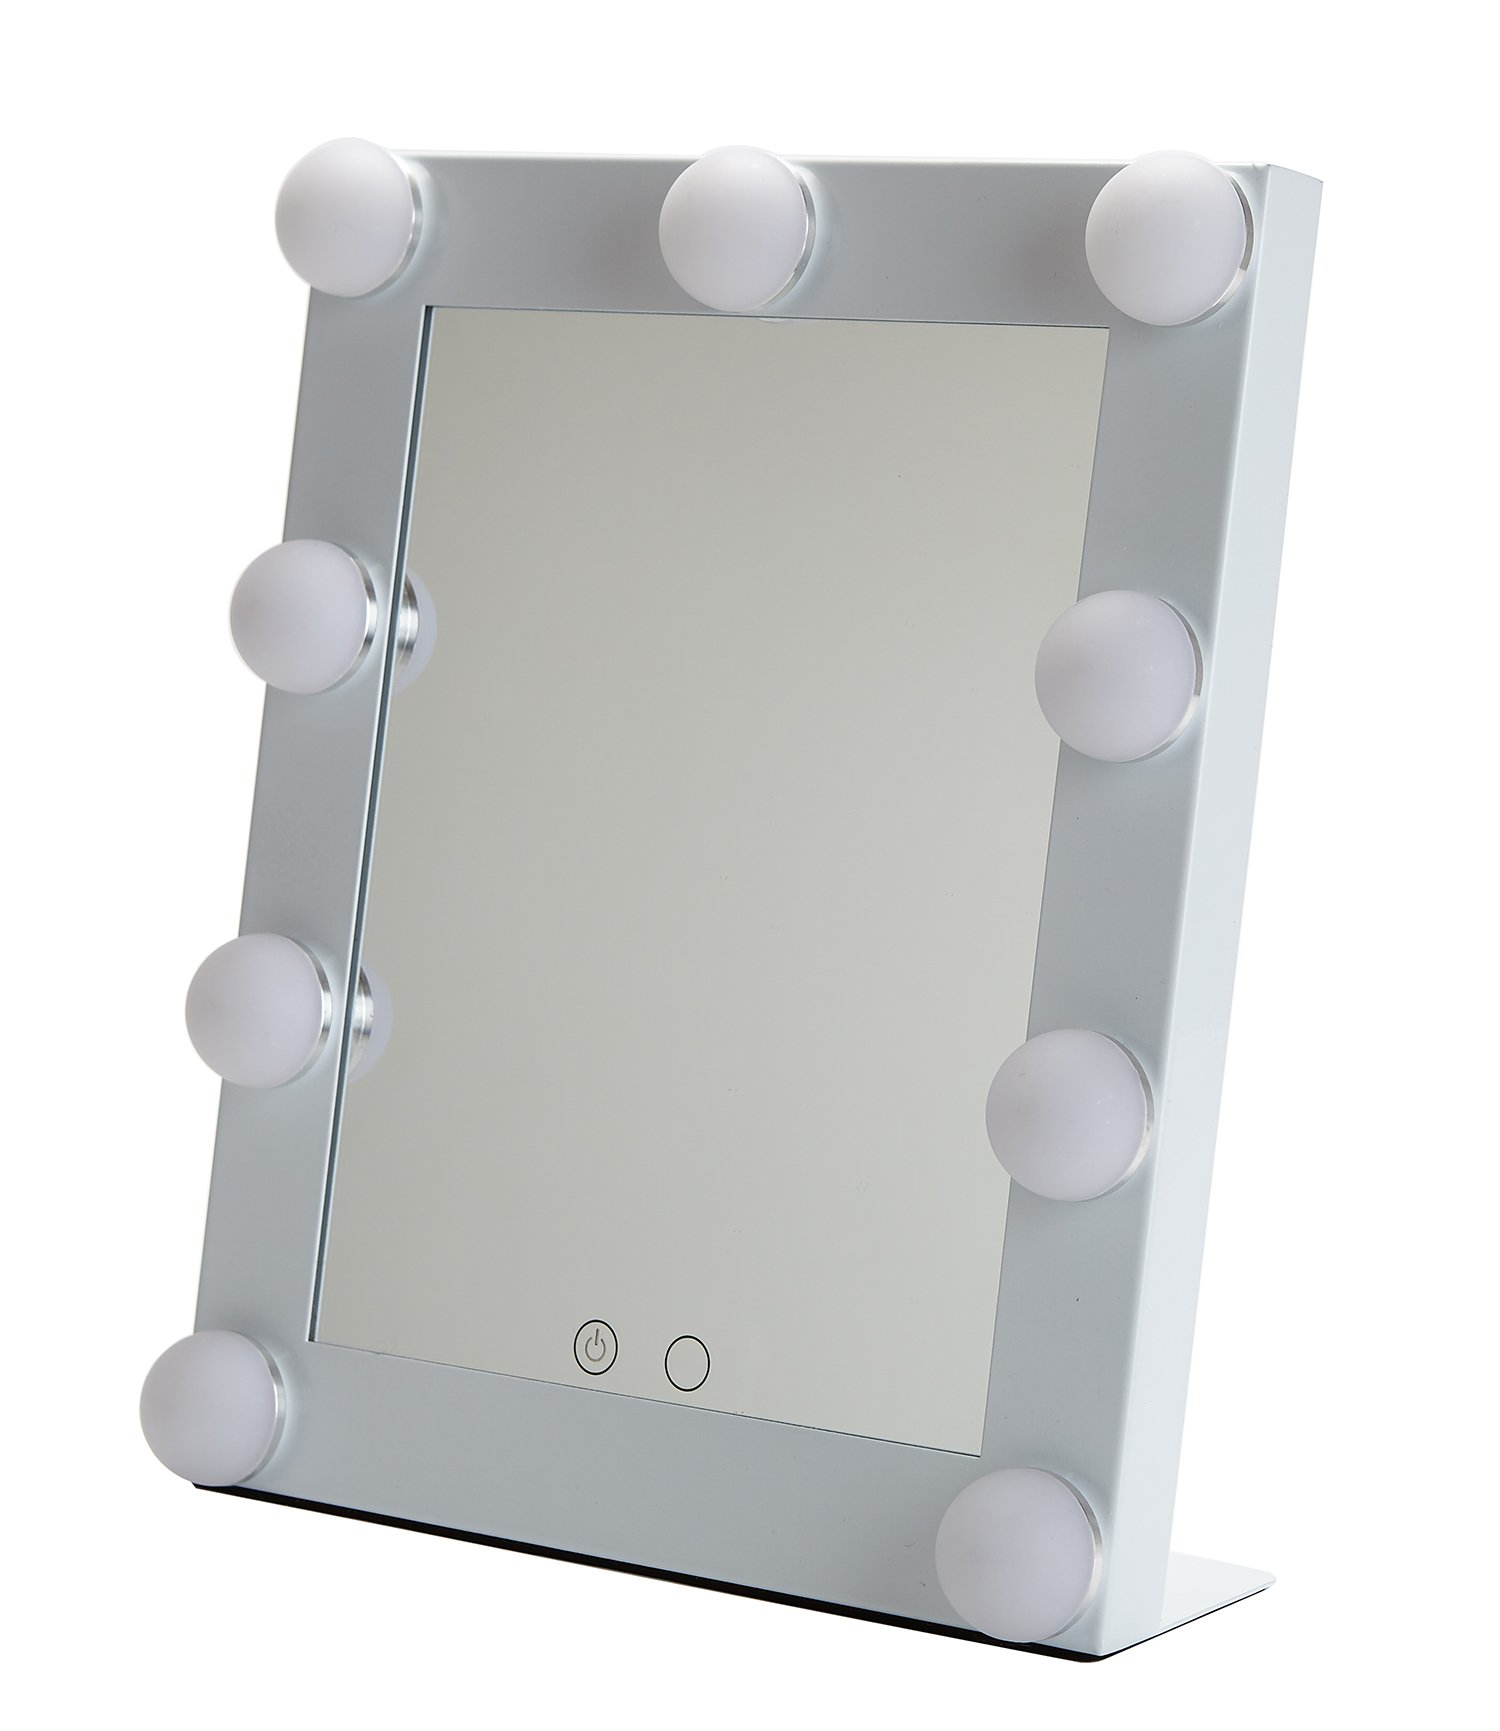 Yvettevans Hollywood Makeup Vanity Mirror with Light Tabletops Lighted Mirror with Dimmer Stage Beauty Mirror Valentine's Day Gift Small (White)